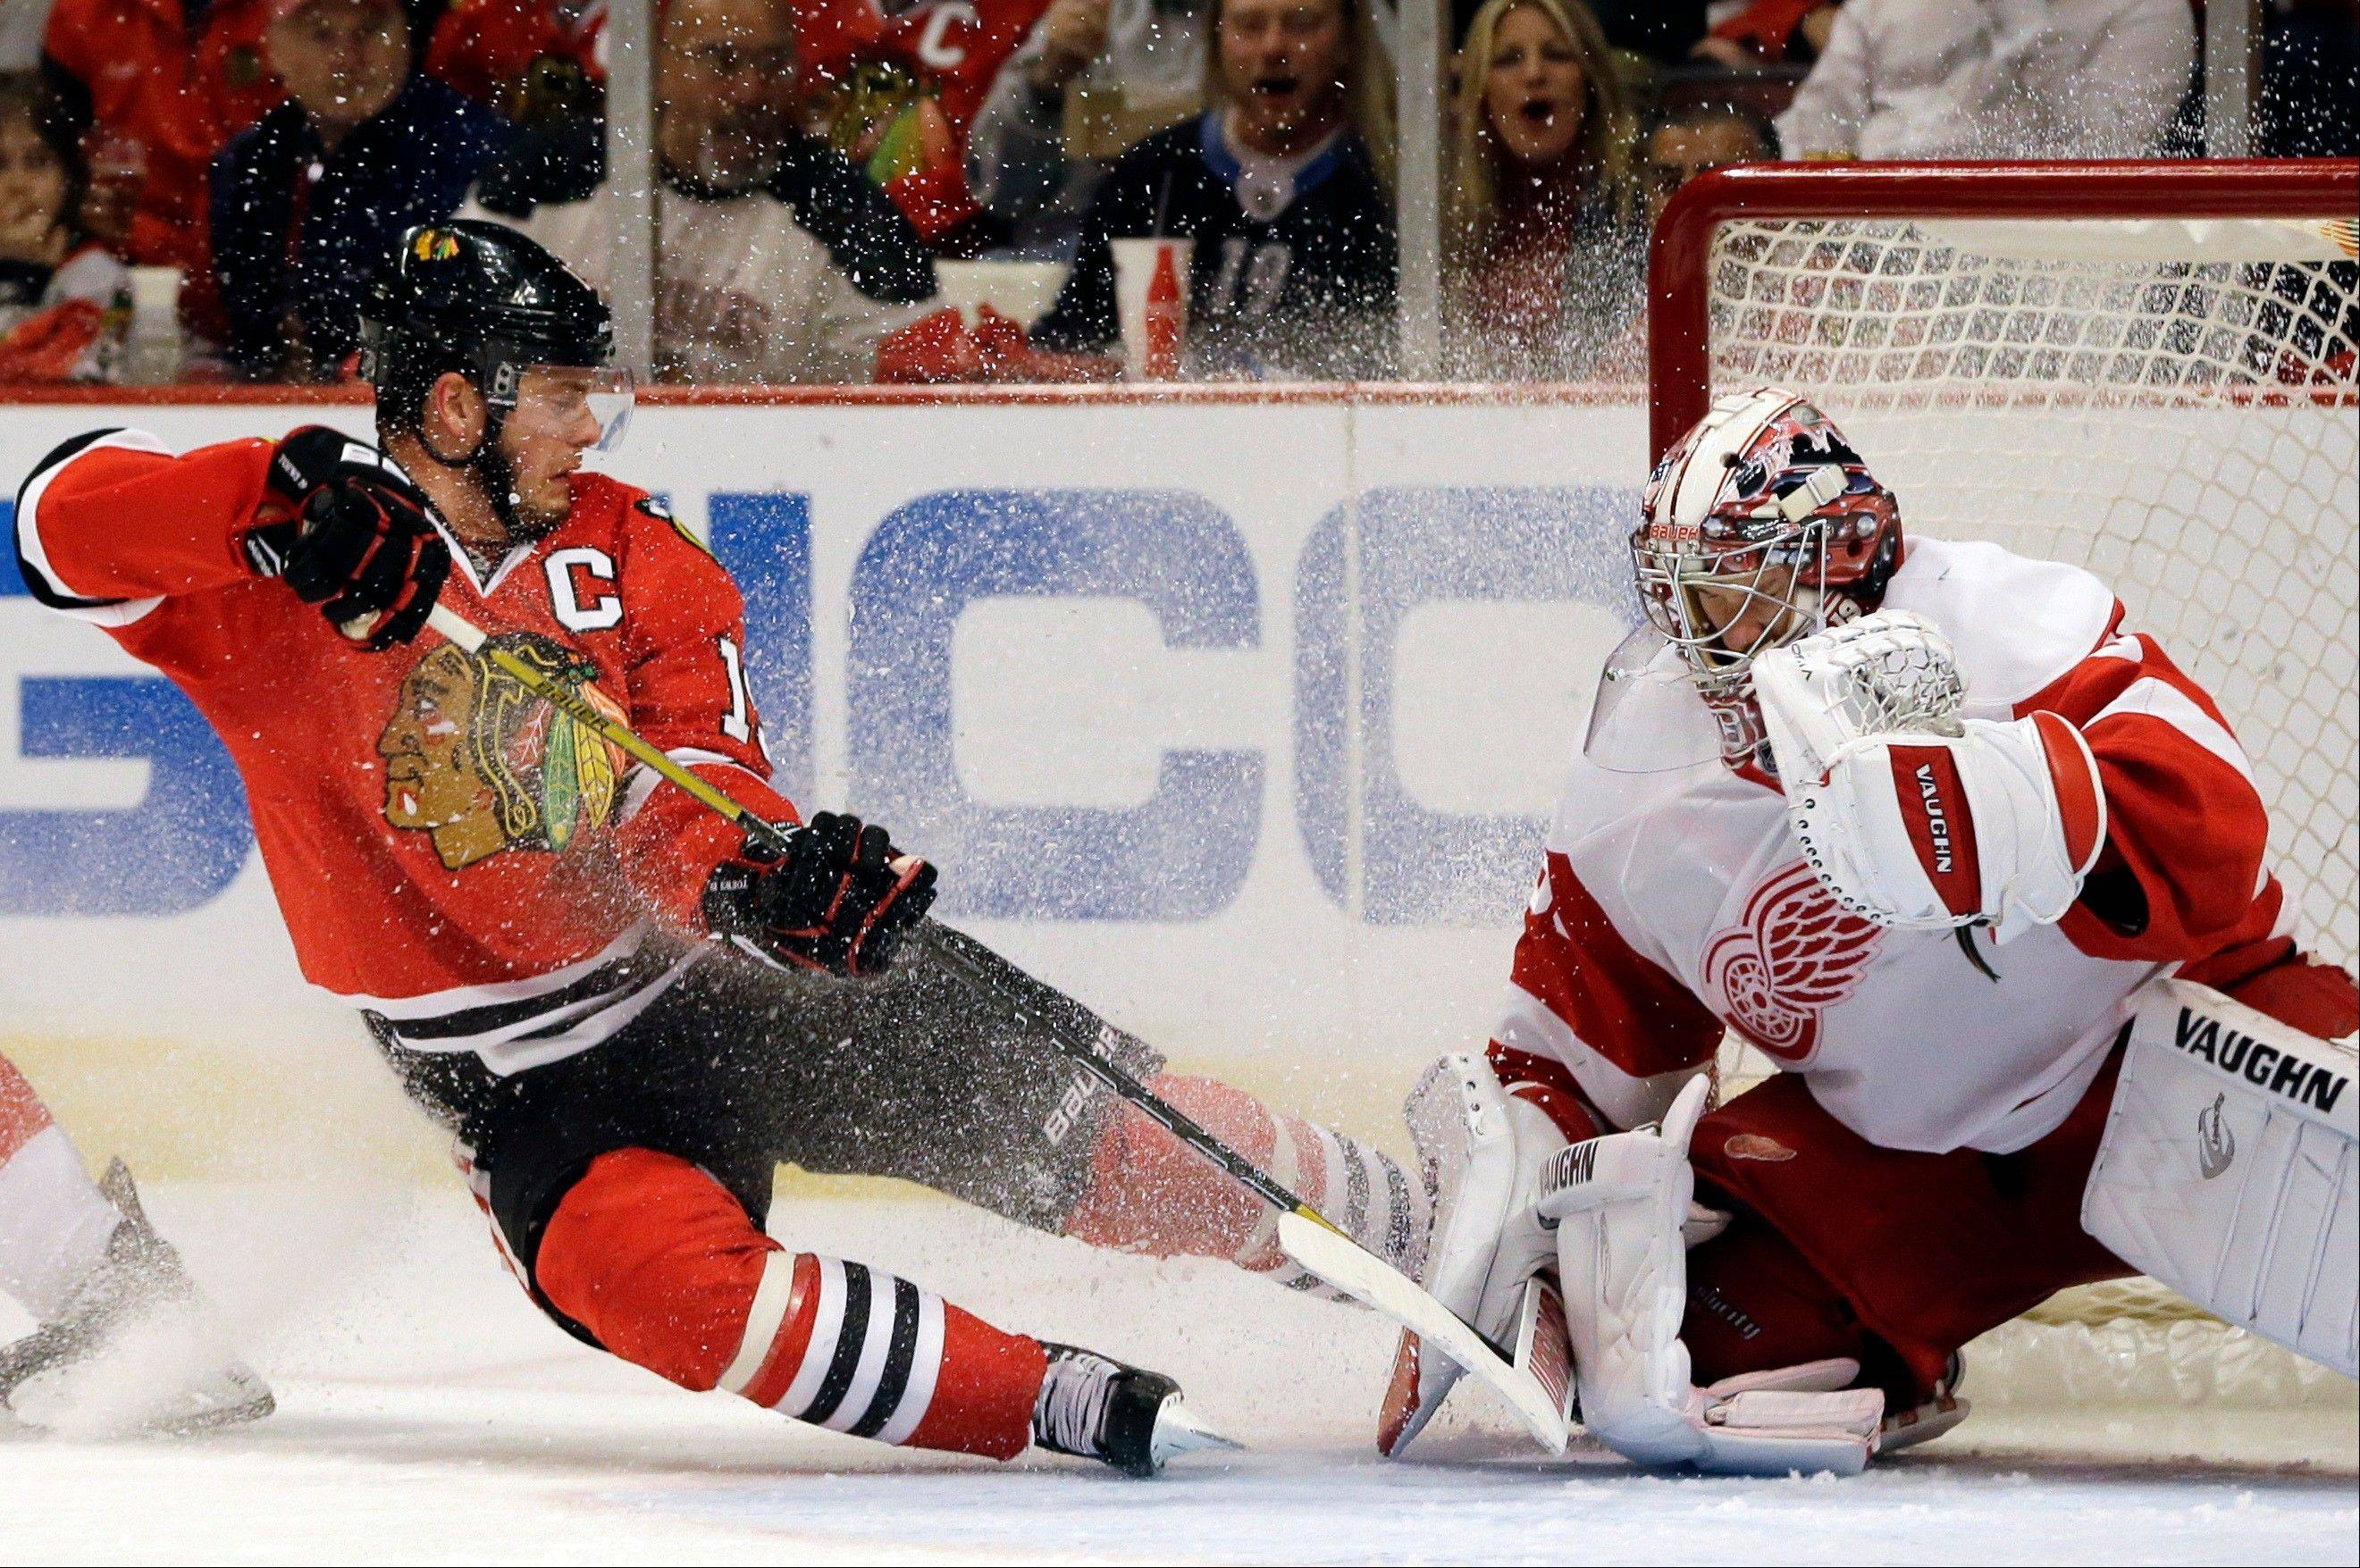 Detroit Red Wings goalie Jimmy Howard, right, saves a shot by Chicago Blackhawks' Jonathan Toews, left, during Game 5 of the NHL hockey Stanley Cup playoffs Western Conference semifinals Saturday at the United Center.